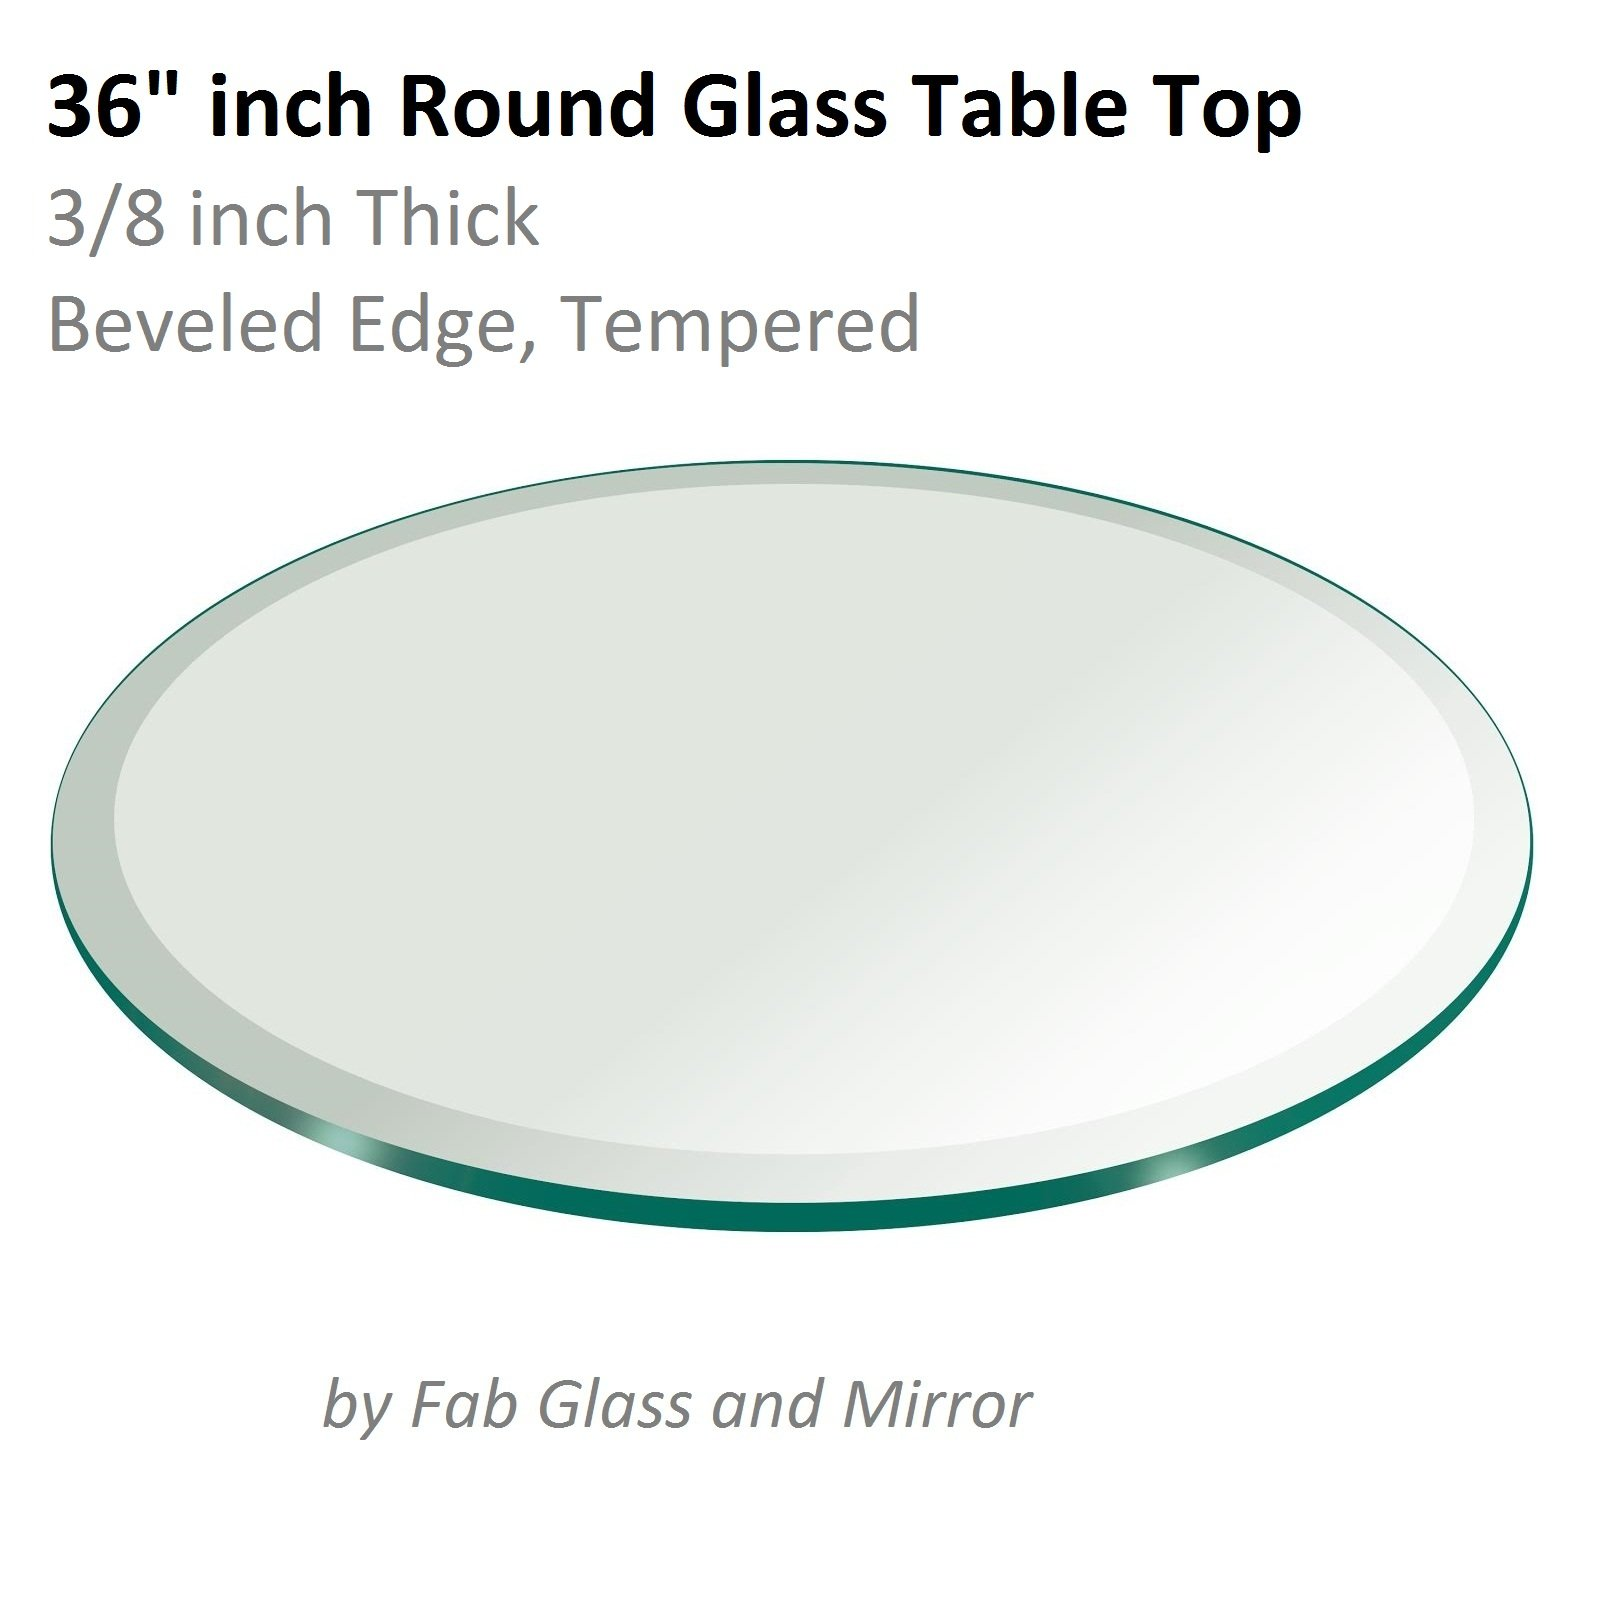 36'' Inch Round Glass Table Top 3/8'' Thick Tempered Beveled Edge by Fab Glass and Mirror by Fab Glass and Mirror